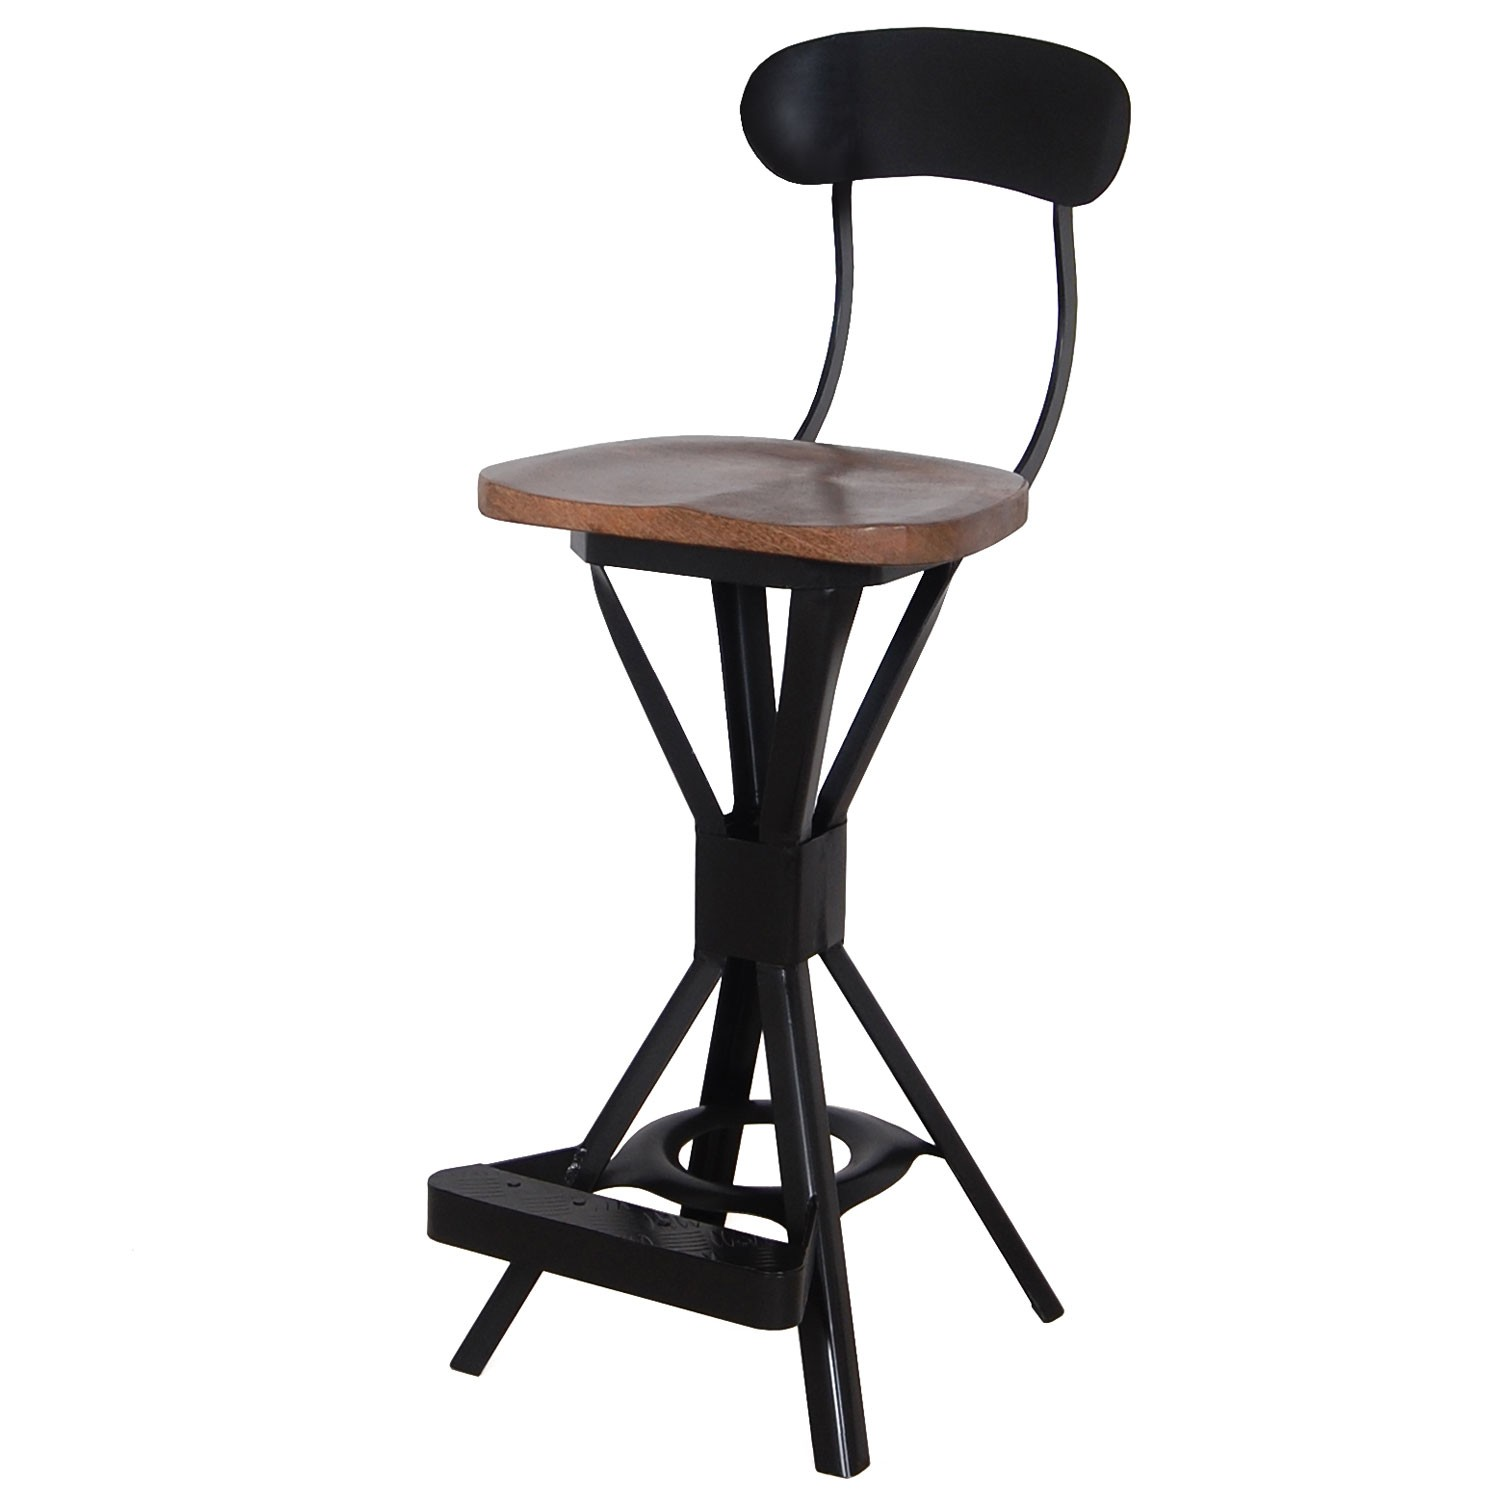 Magasin Chaises Industrielles Chaise De Bar Delhi 67 Cm